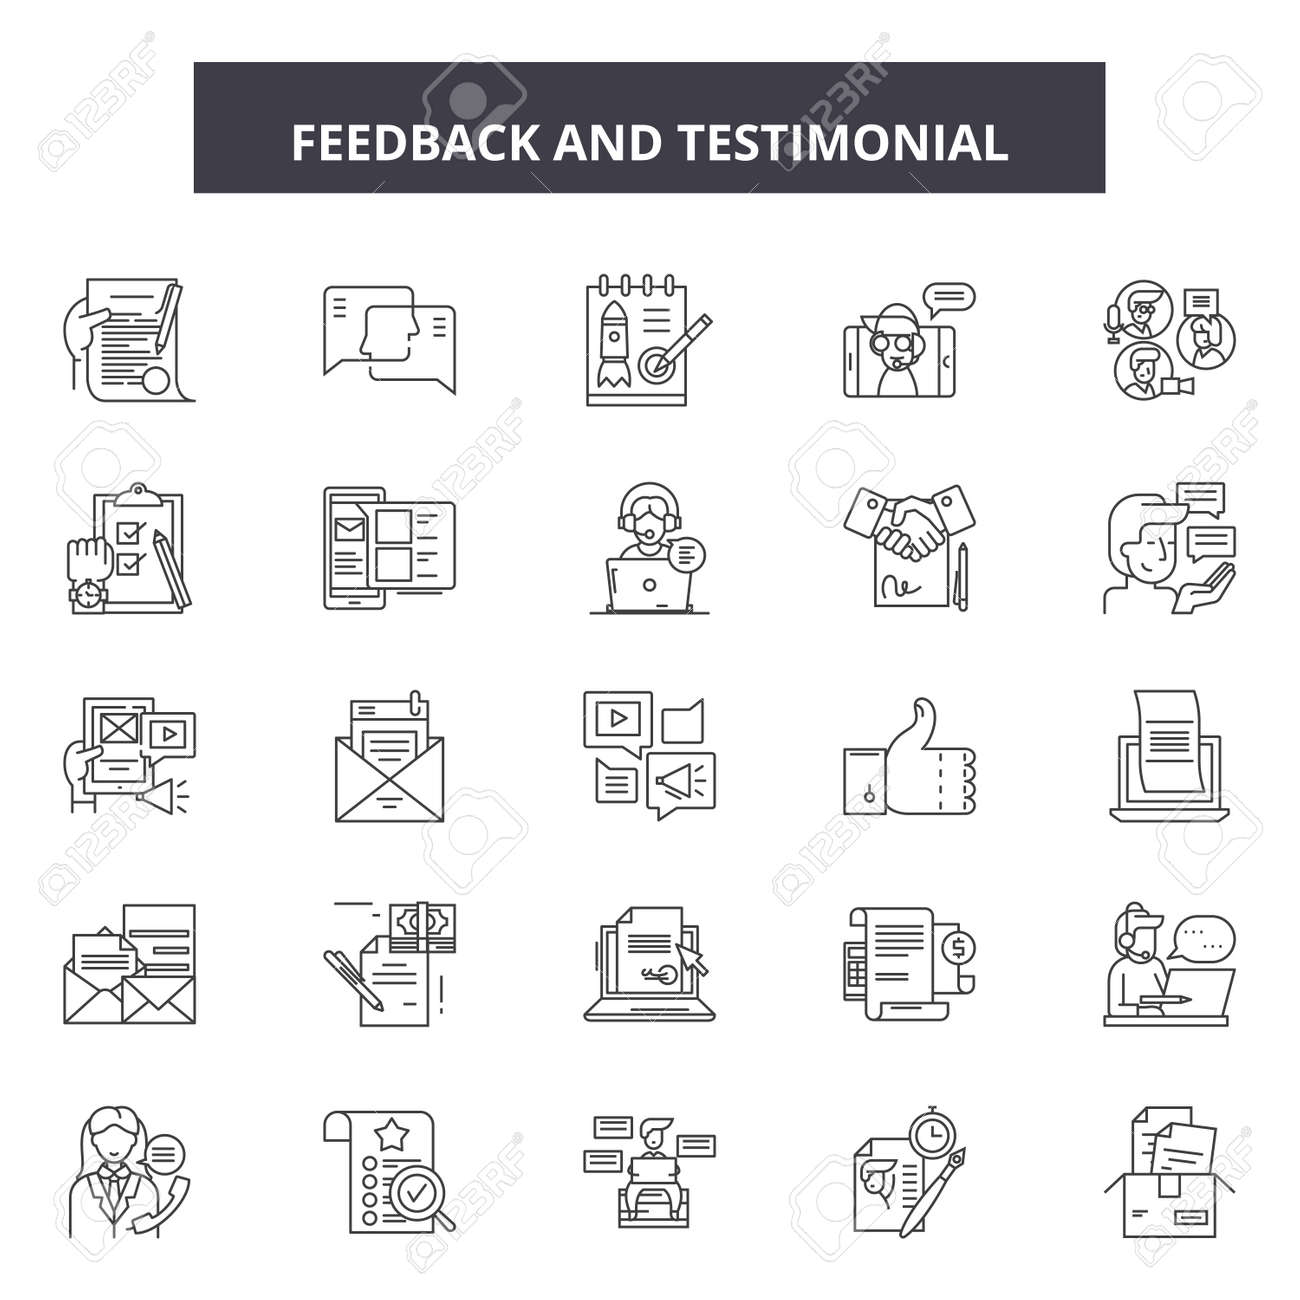 Feedback testimonial line icons, signs set, vector. Feedback testimonial outline concept illustration: feedback,opinion,comment,business,web,concept,symbol - 120895779